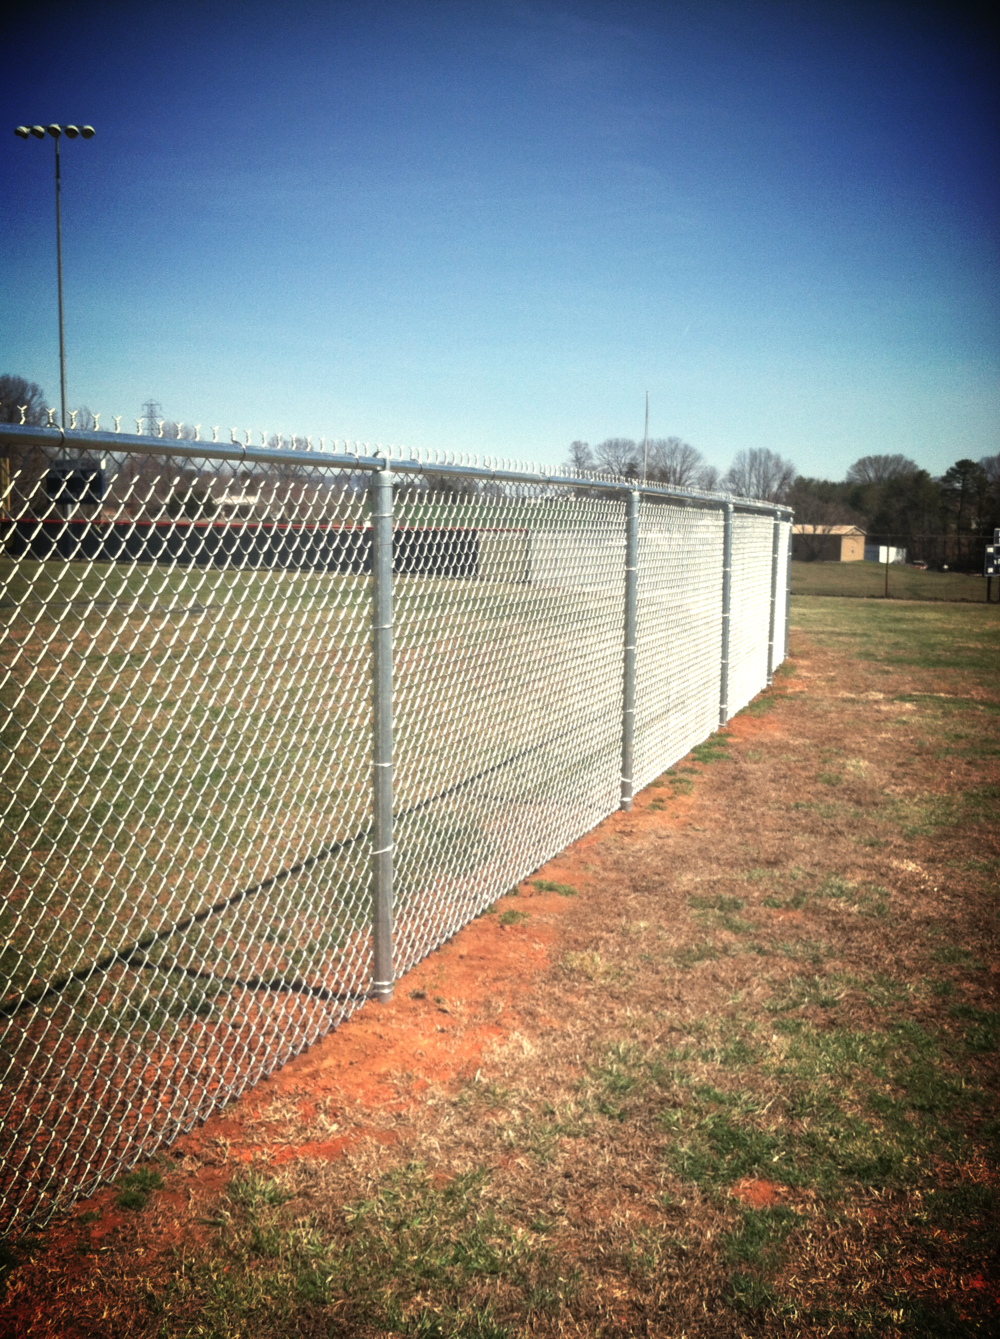 6' High Chain Link Softball field fence at Liberty H.S. in Bedford